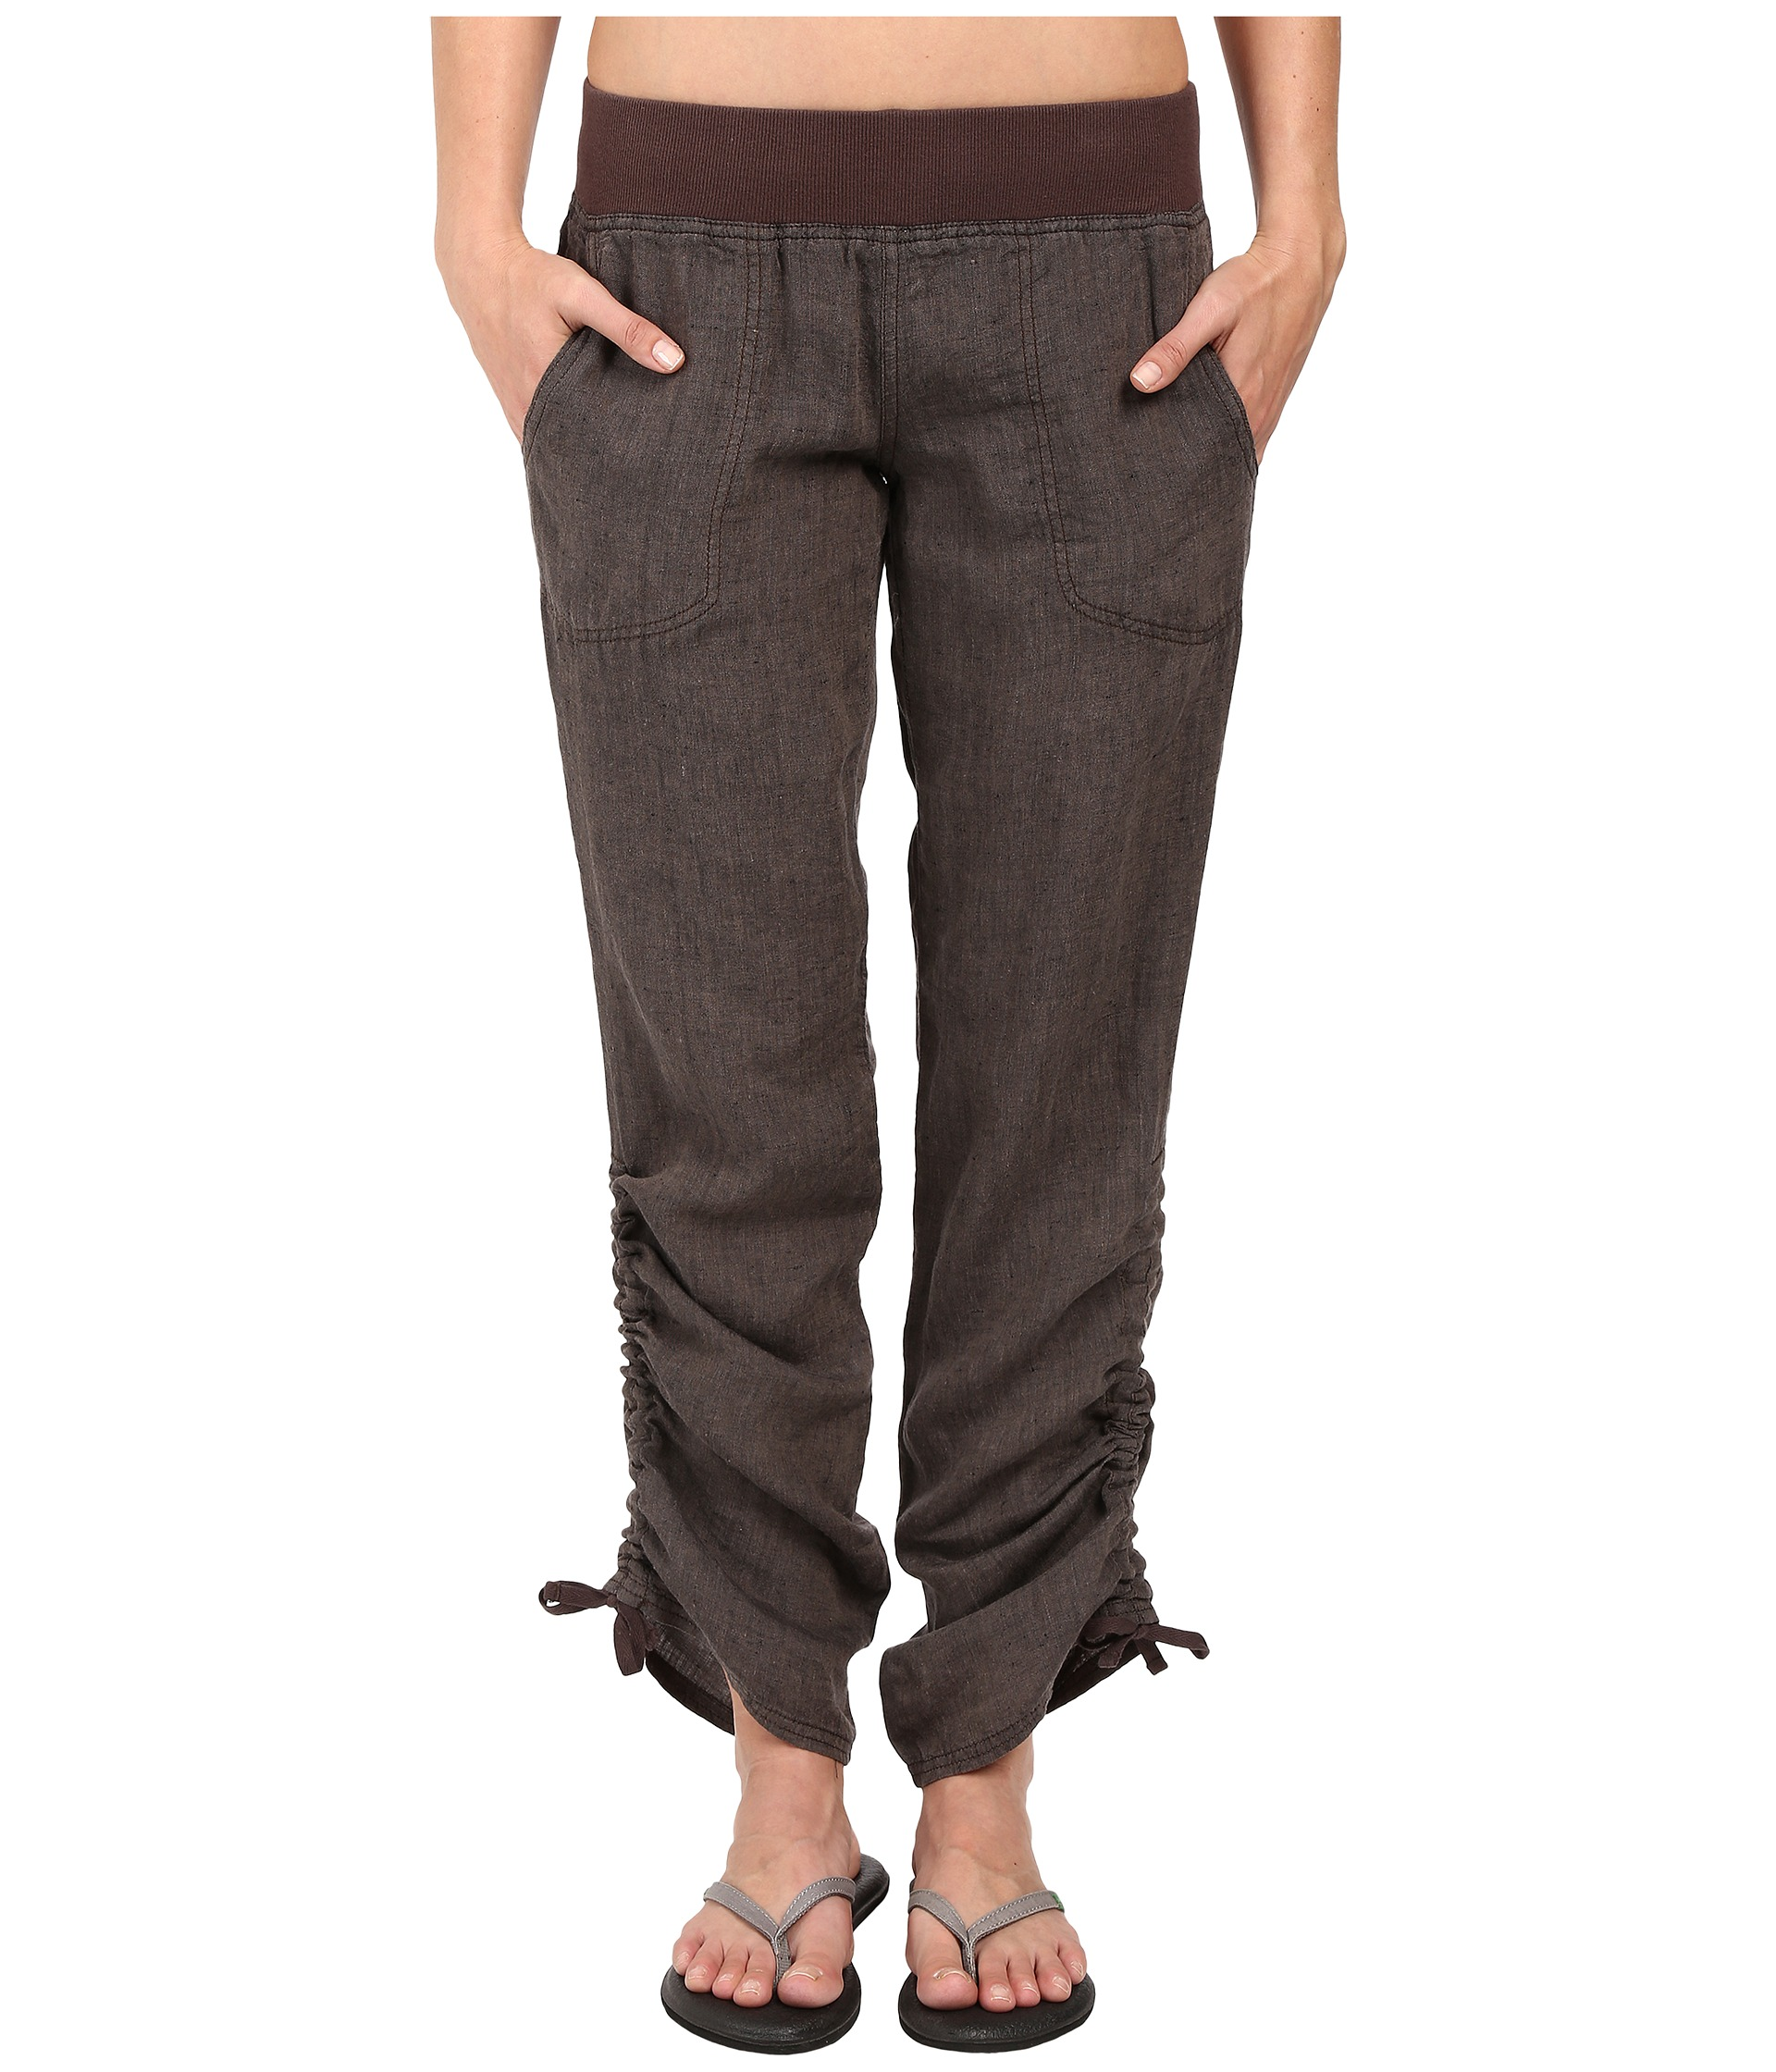 Dark Brown Pants For Women